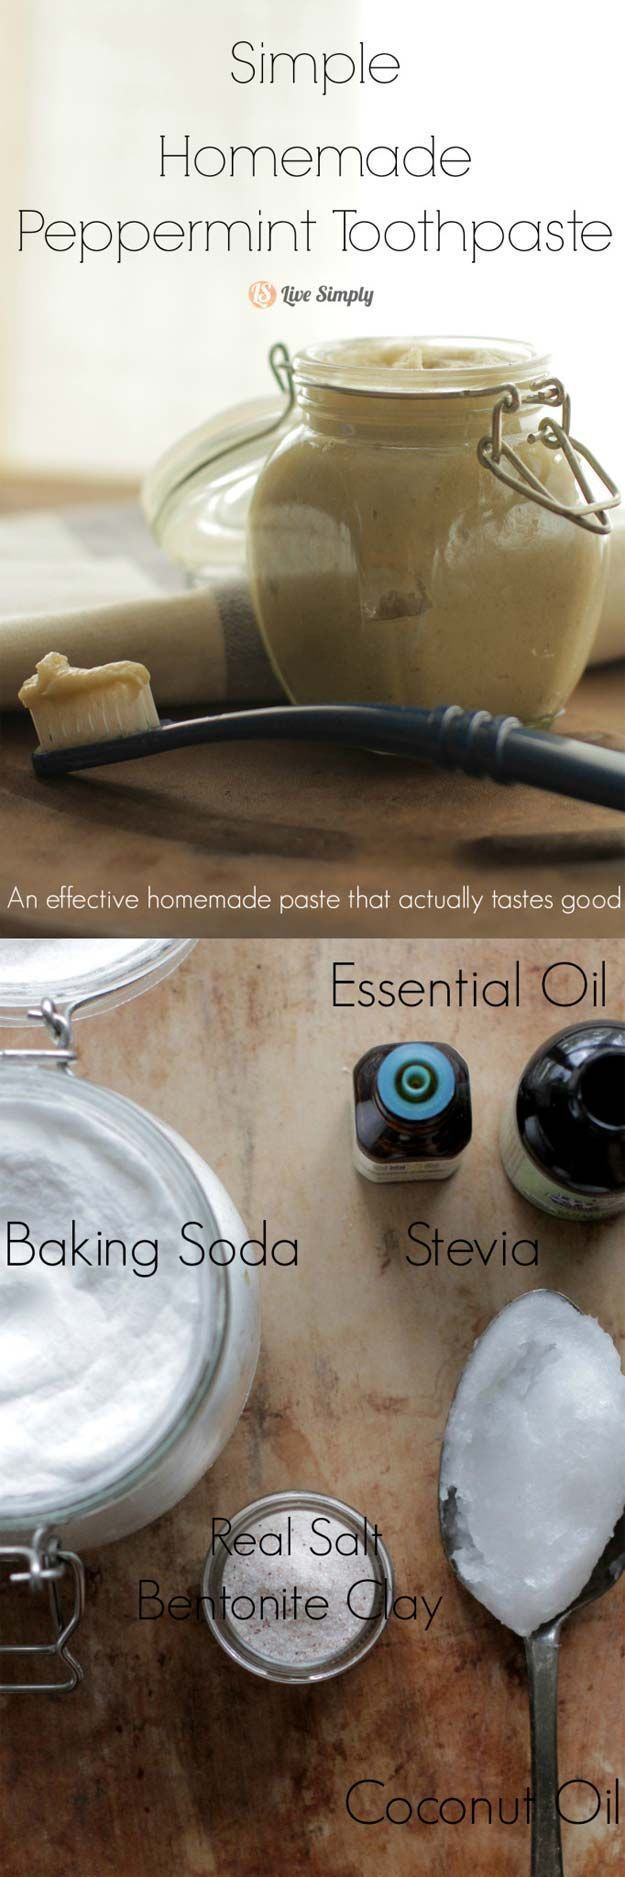 Teeth Whitening Tricks to Try at Home - Simple Homemade Peppermint Toothpaste - Awesome DIY Tips for Whitening Your Teeth At Home Using Baking Soda, Activated Charcoal, or Hydrogen Peroxide. Homemade Natural Remedies for Overnight Whitening. Some of These Use Brushes, and Some Don't, but All Are Great For Dental Health. These Beauty Tips Will Make You Say It Works! - https://thegoddess.com/teeth-whitening-tricks #HomeRemediesforTeethWhitening #whiterteeth